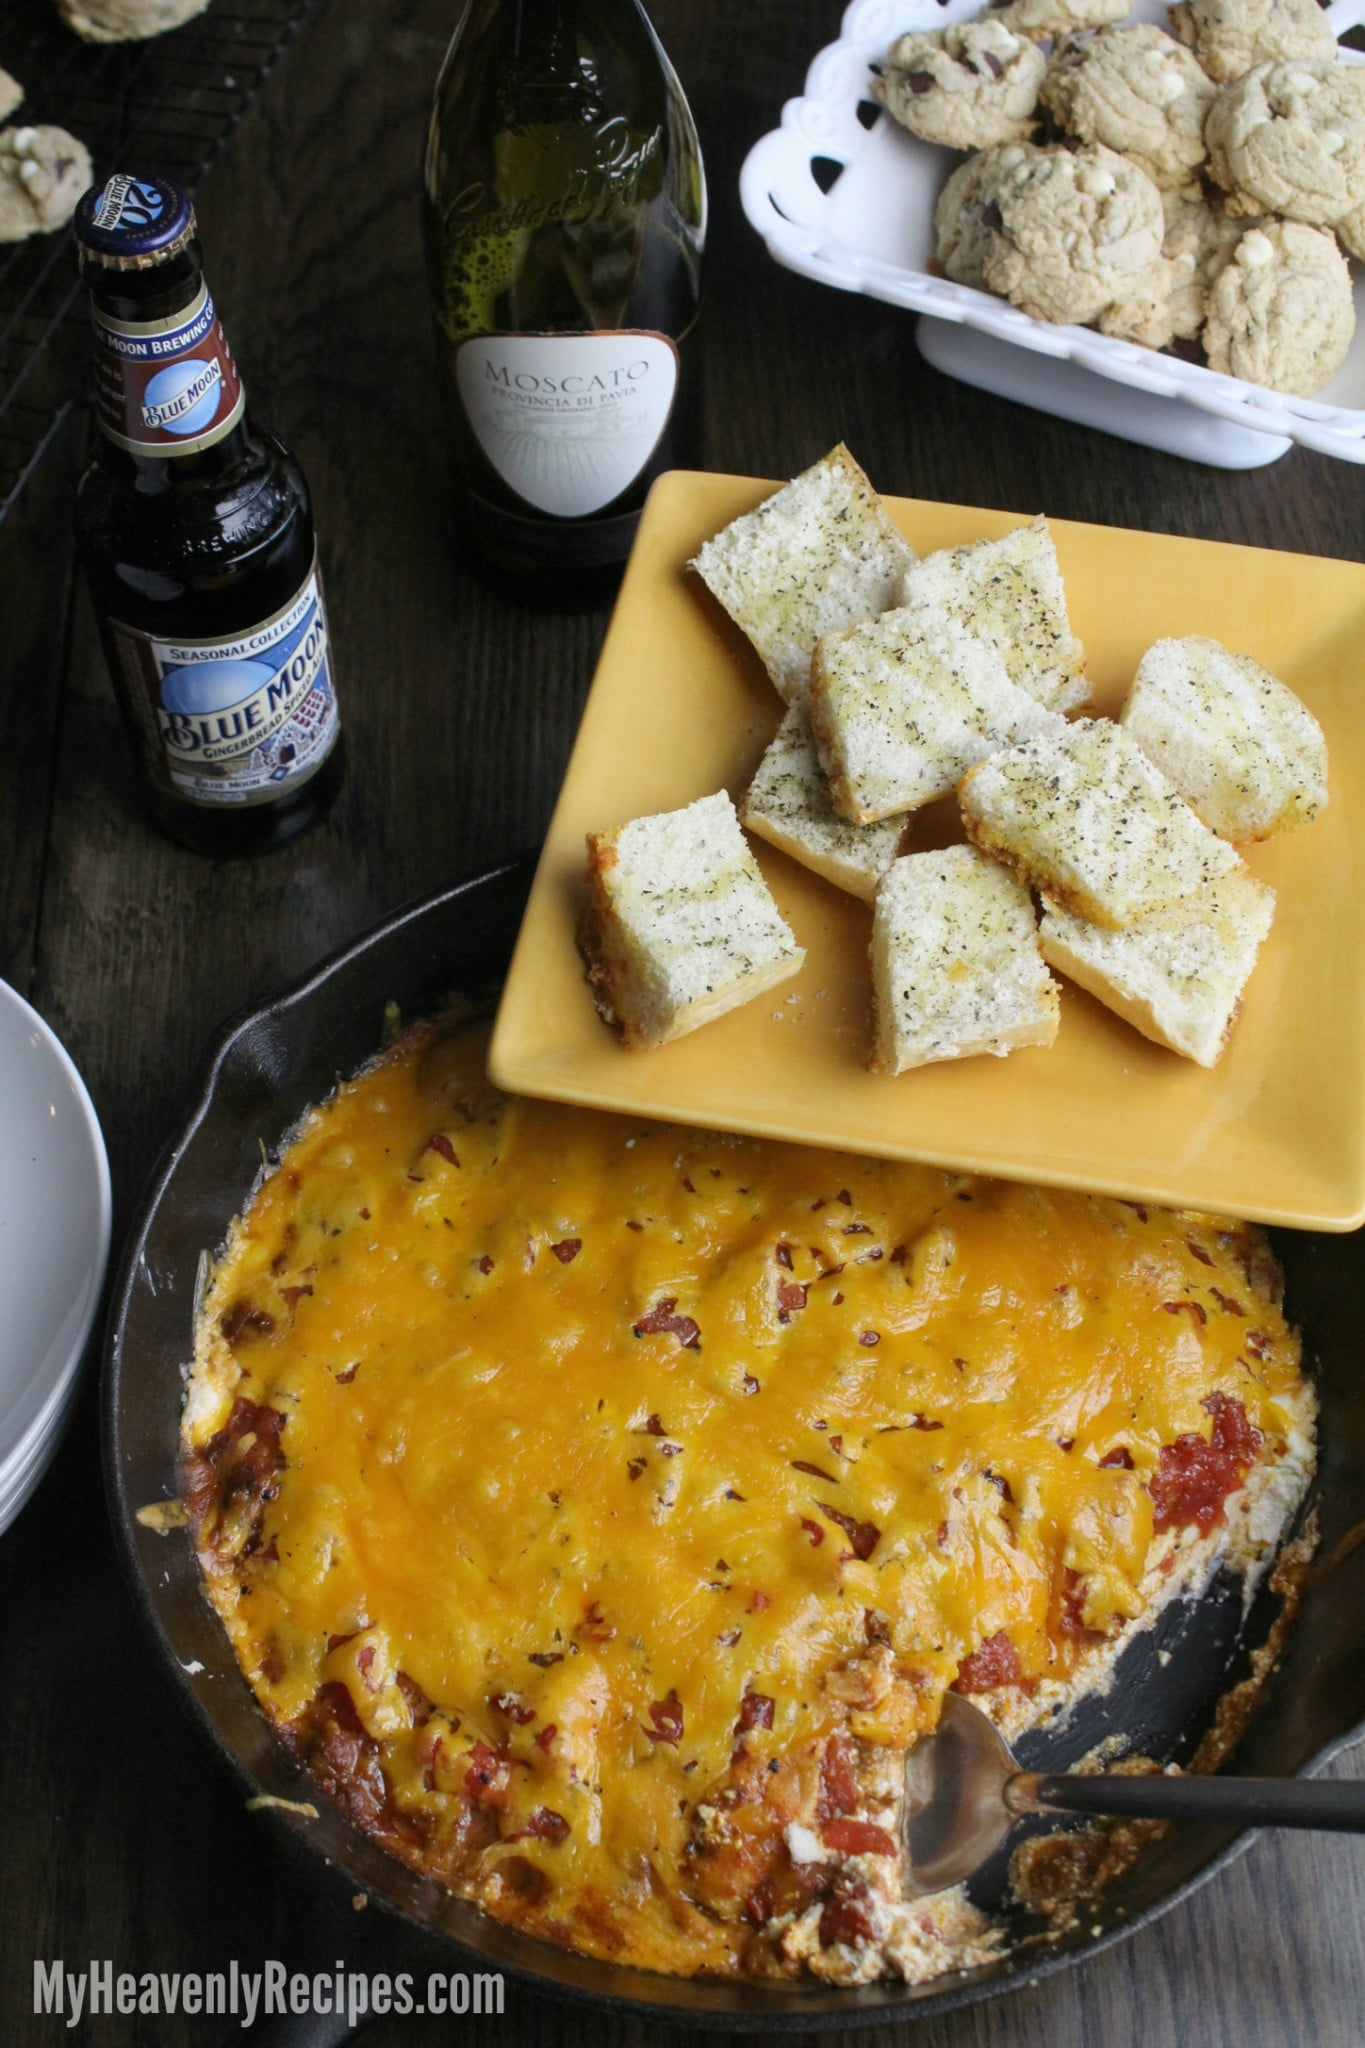 One Dish Chili Dip - This recipe is a perfect appetizer for the big game. Find out how I save time, money and it doesn't involve a whole lot of clean up! #YesYouCAN #ad #MyHeavenlyRecipes  #Chili #Dip #GameDay